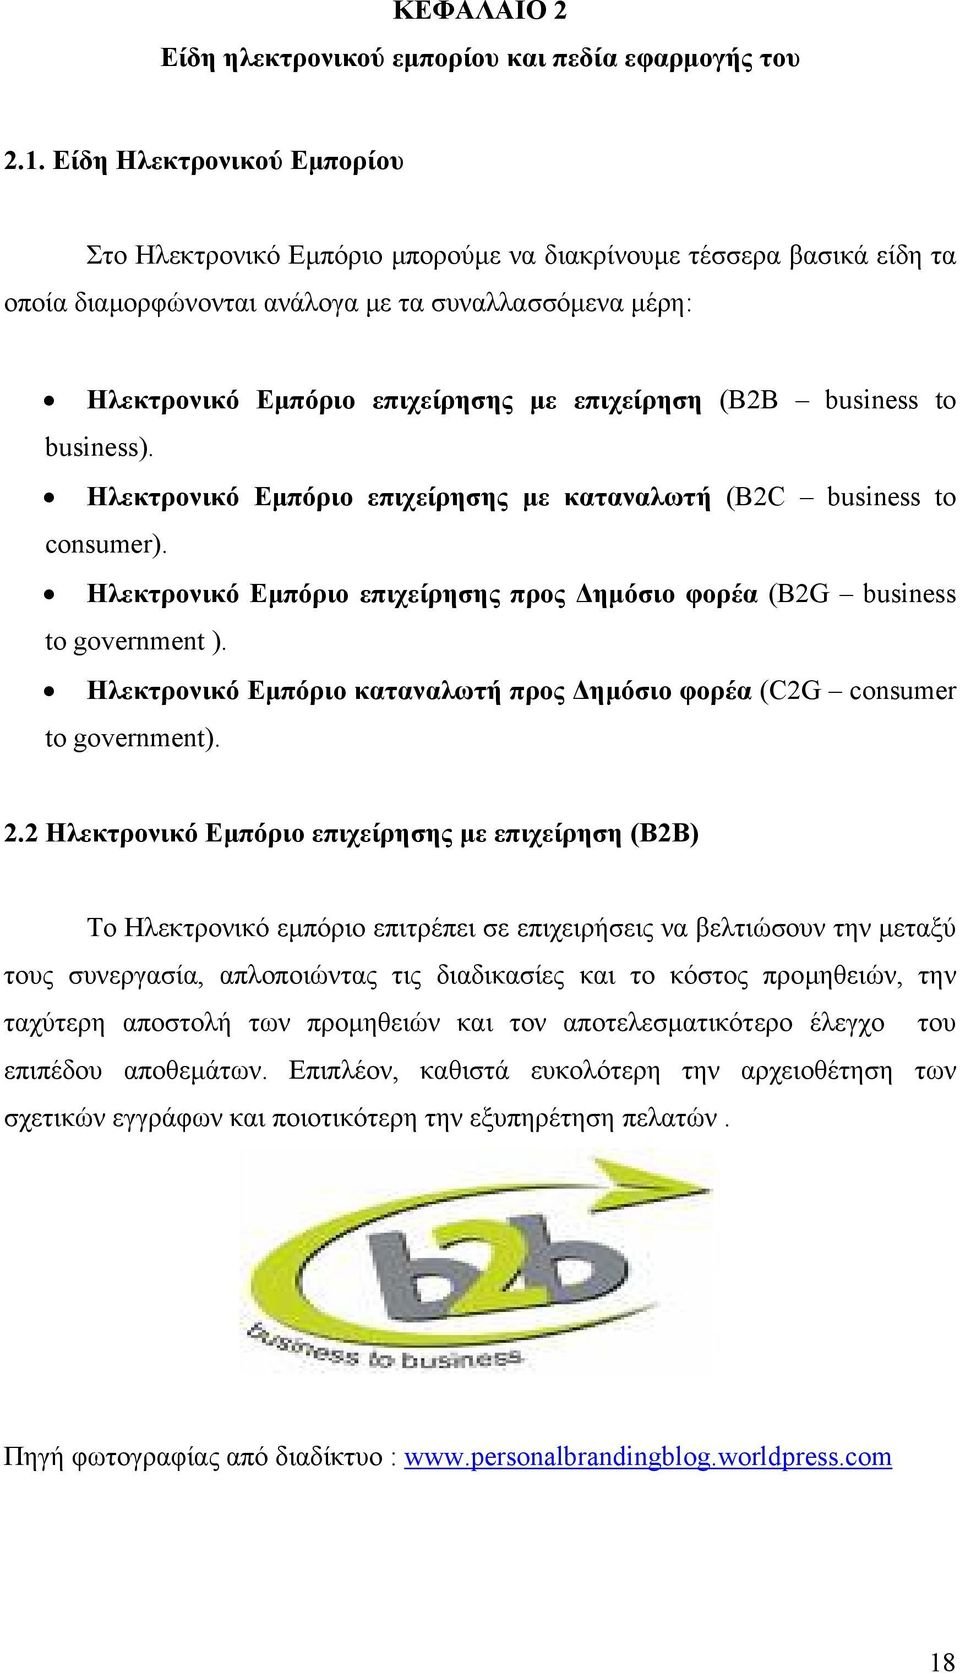 (B2B business to business). Ηλεκτρονικό Εμπόριο επιχείρησης με καταναλωτή (B2C business to consumer). Ηλεκτρονικό Εμπόριο επιχείρησης προς Δημόσιο φορέα (B2G business to government ).